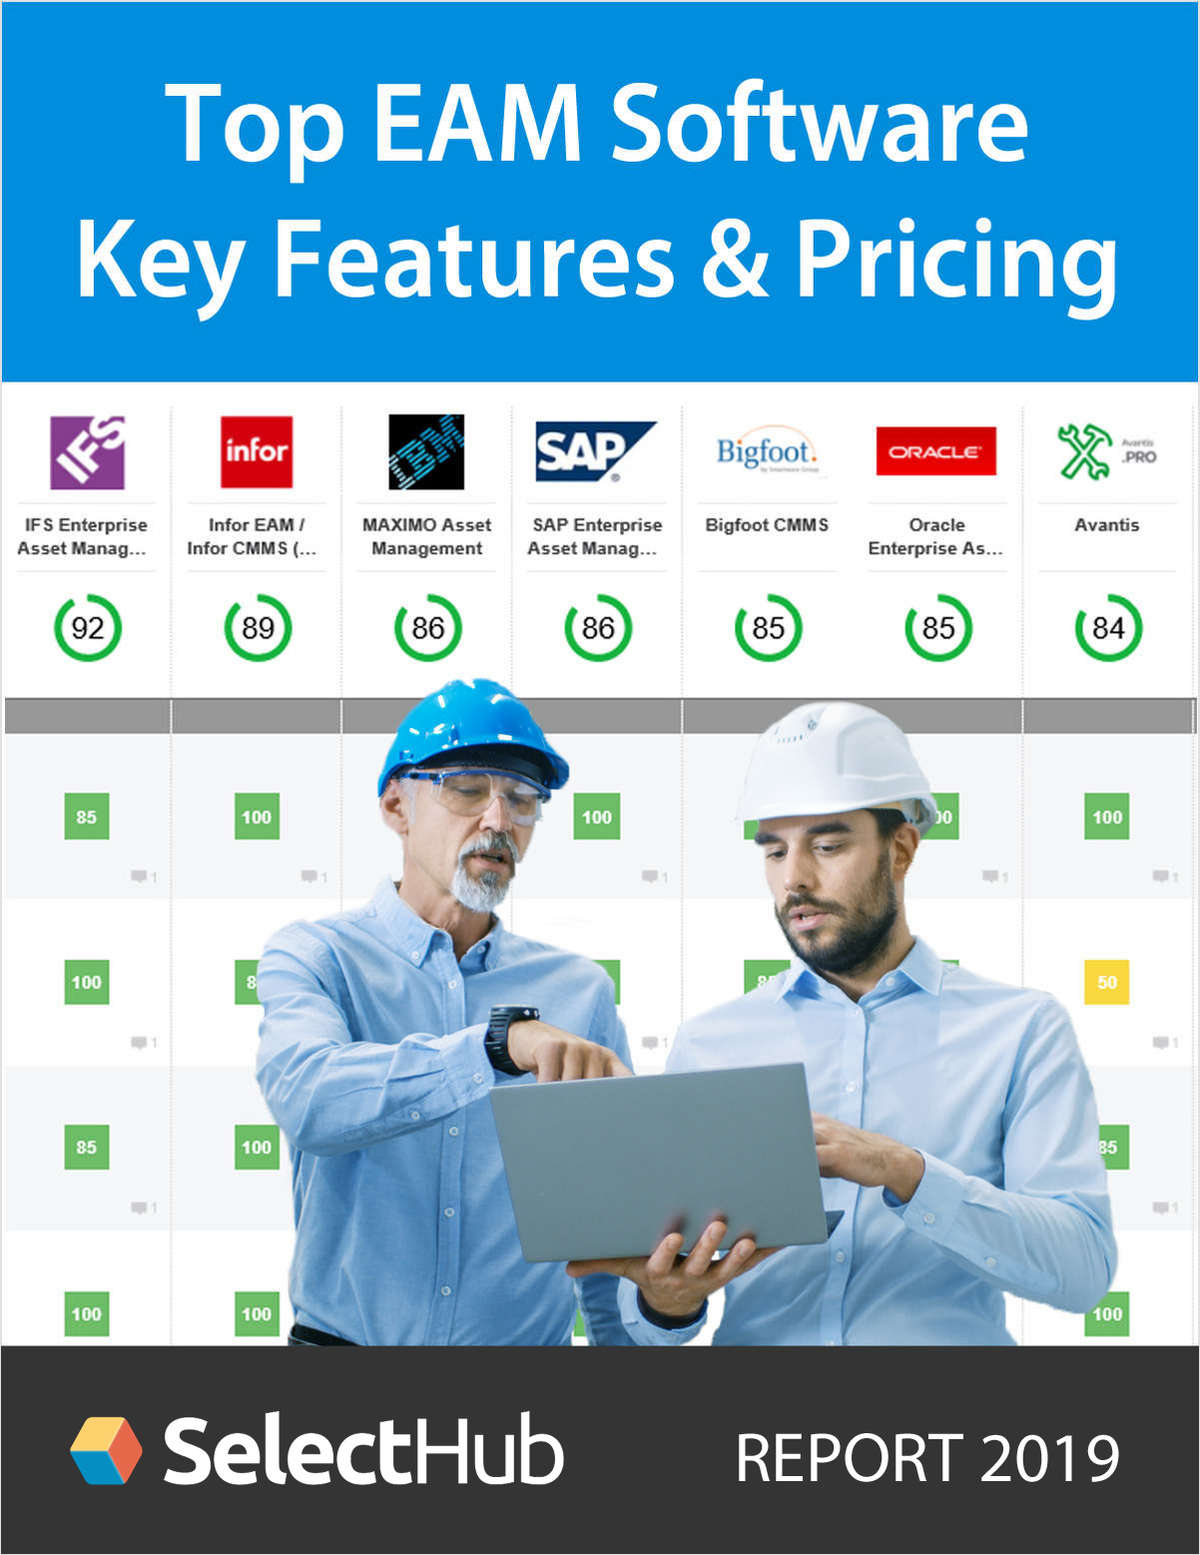 Top EAM Software--Get Key Features, Recommendations & Pricing